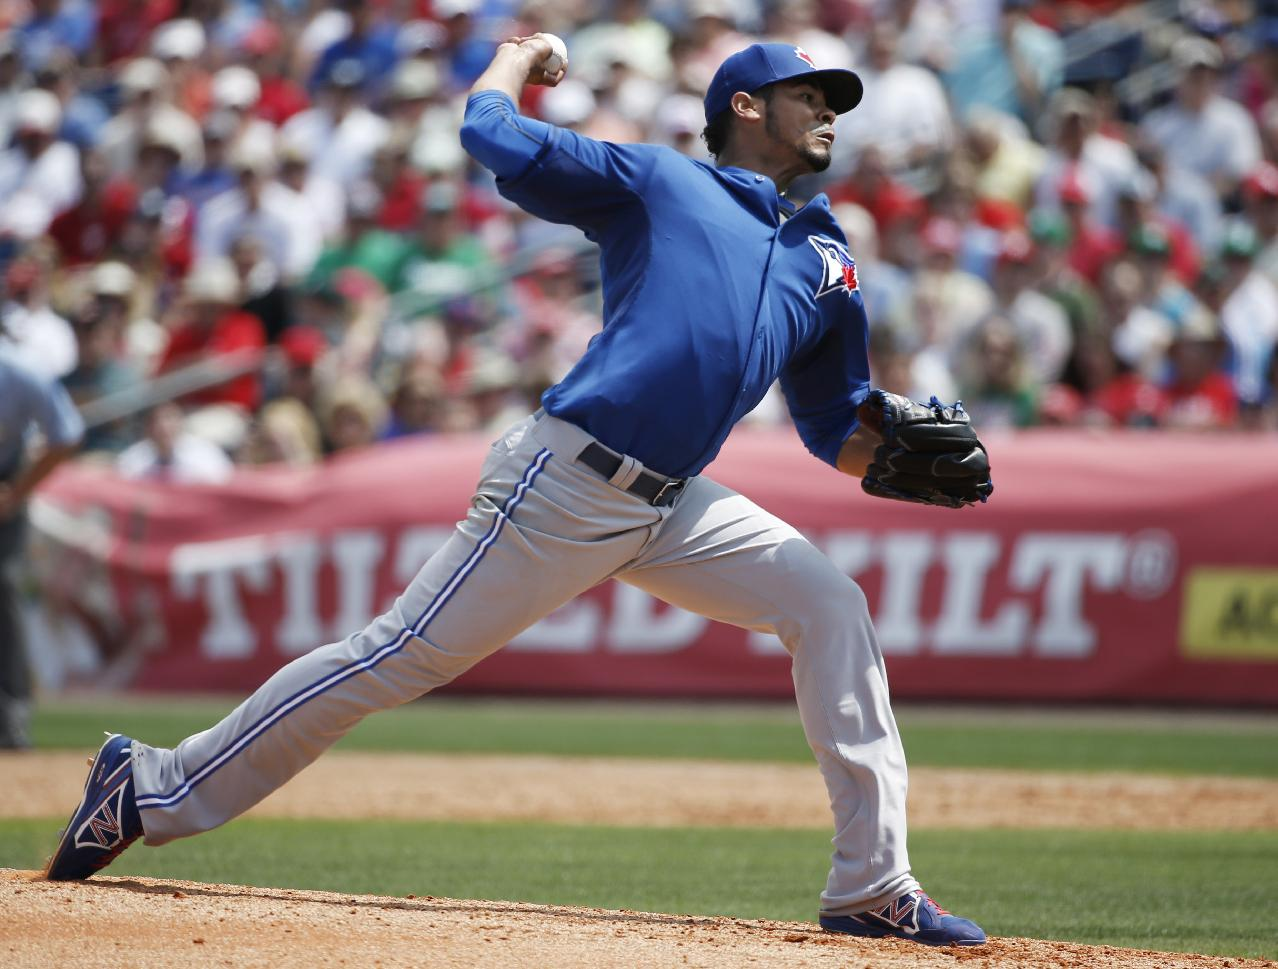 Toronto Blue Jays starting pitcher Esmil Rogers delivers in the second inning of a spring exhibition baseball game against the Philadelphia Phillies in Clearwater, Fla., Thursday, March 20, 2014. The Blue Jays won 3-1